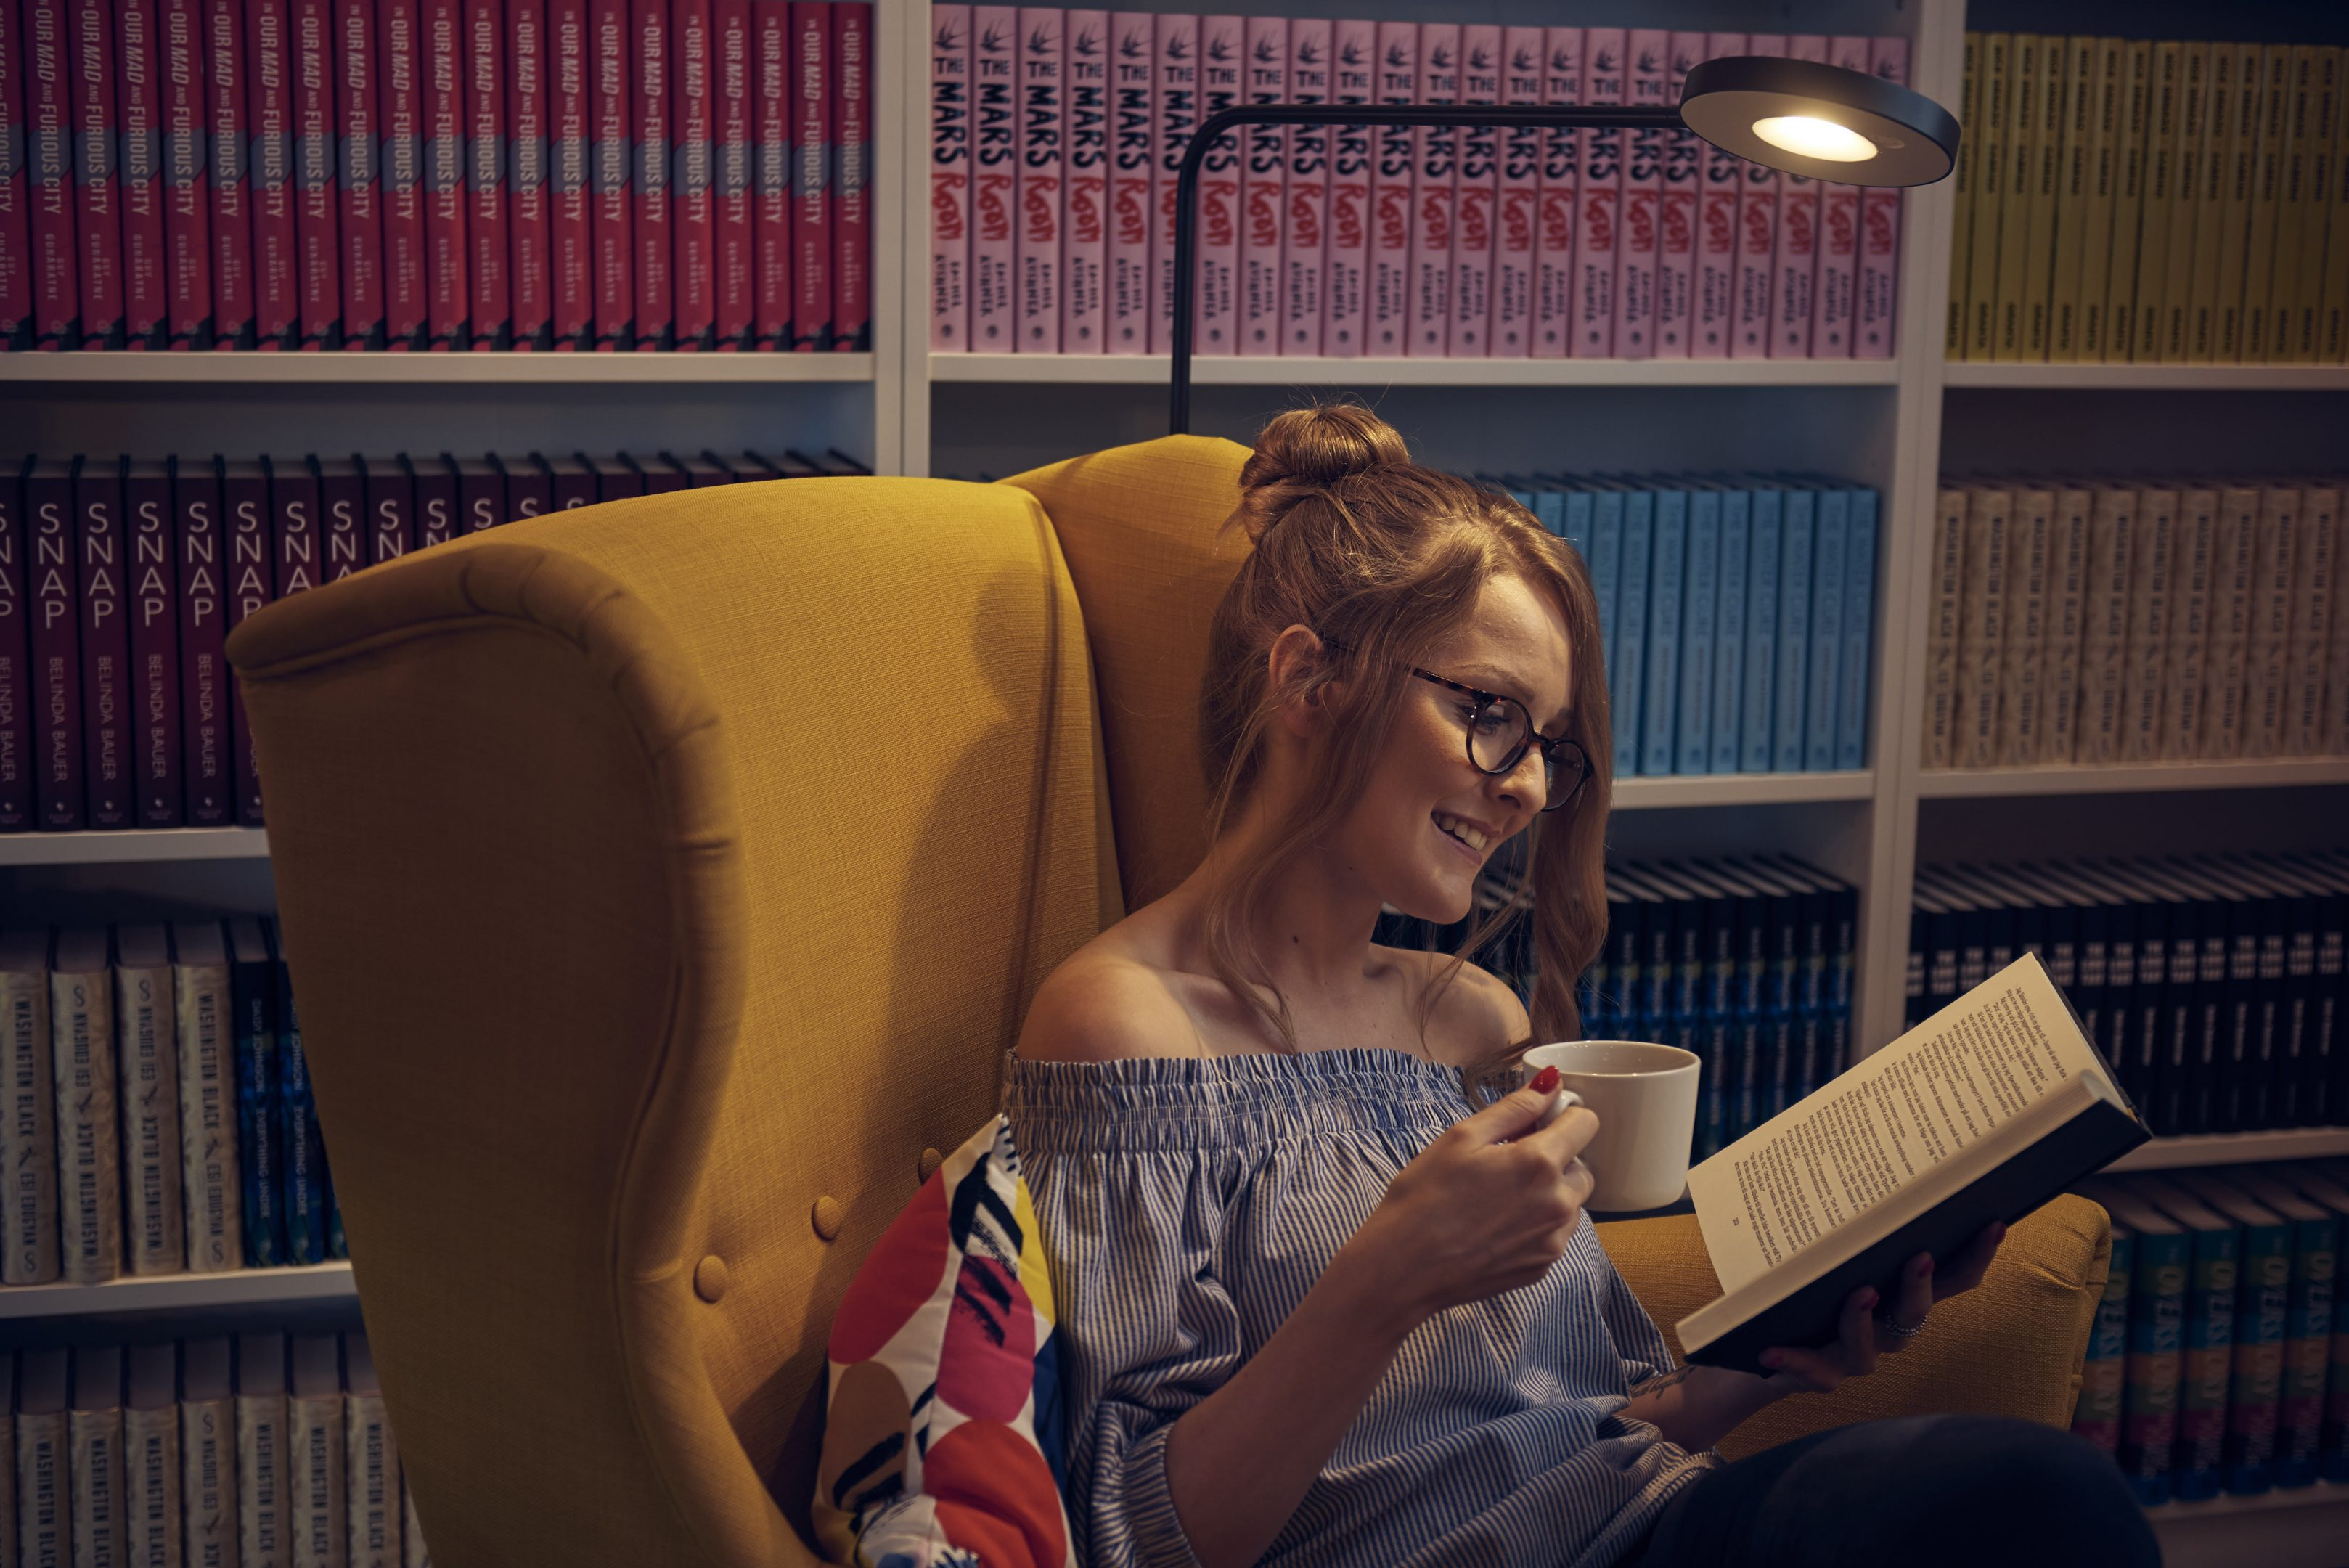 Lady Reading for Relaxation with IKEA